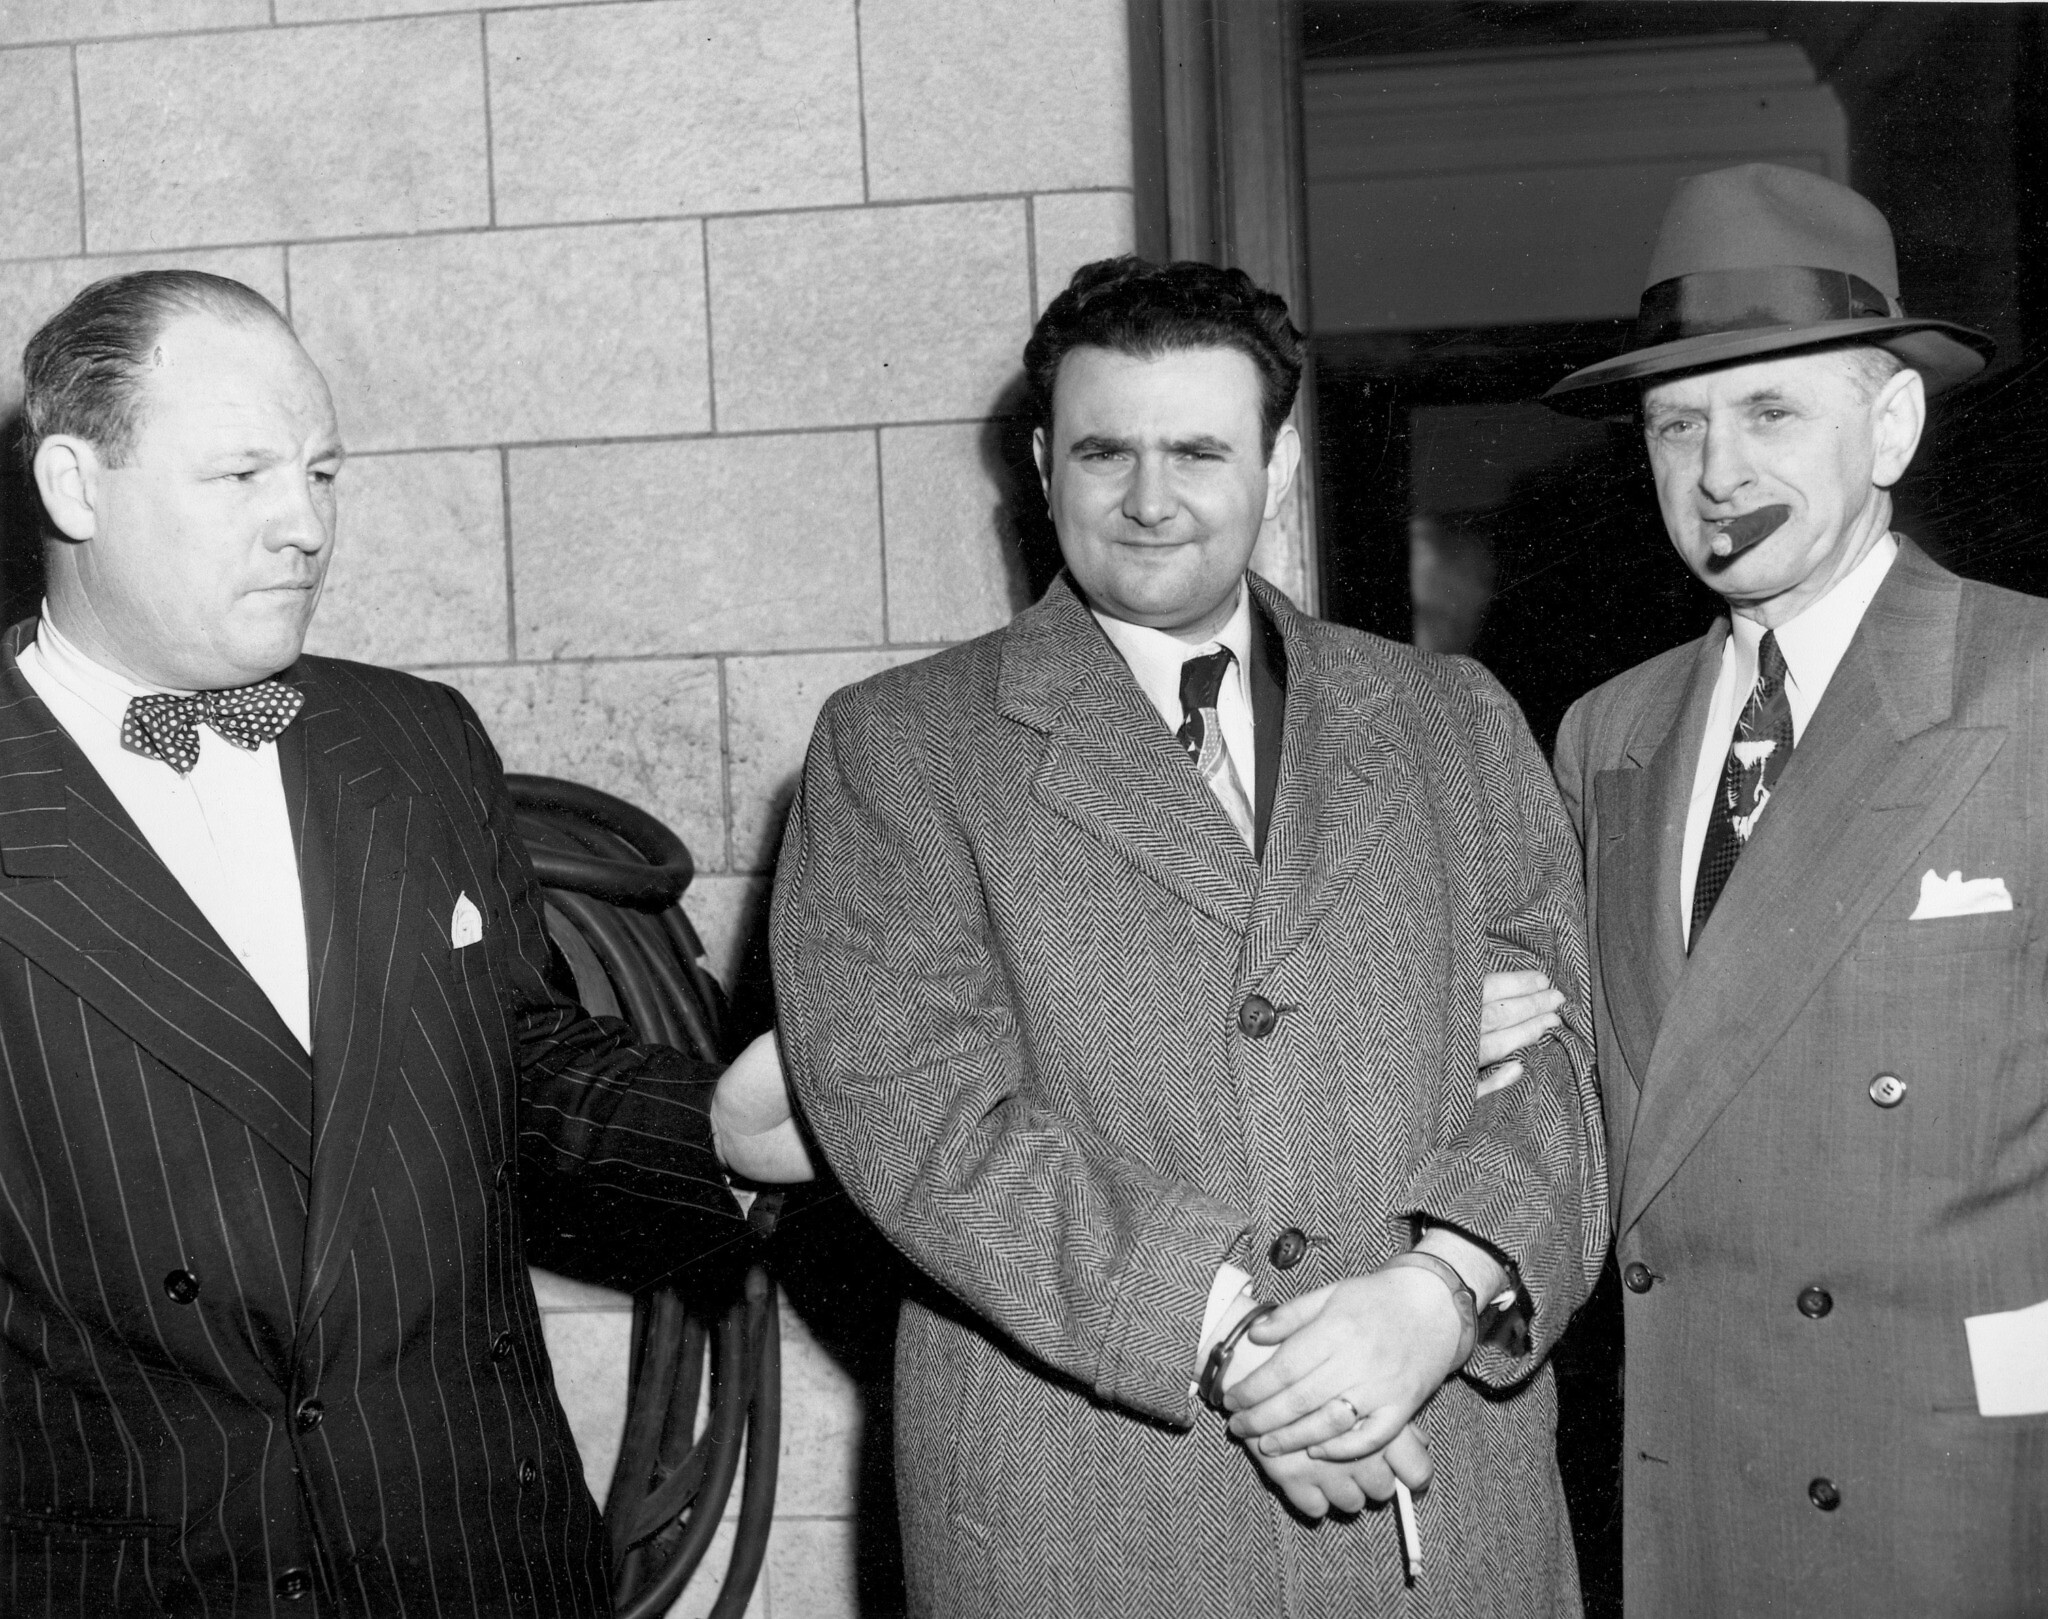 A handcuffed David Greenglass is escorted by US Deputy Marshall Eugene Fitzgerald from Federal Courthouse in New York City after being sentenced to 15 years in prison for conspiracy to spy for the Soviet Union, April 6, 1951. (AP Photo)